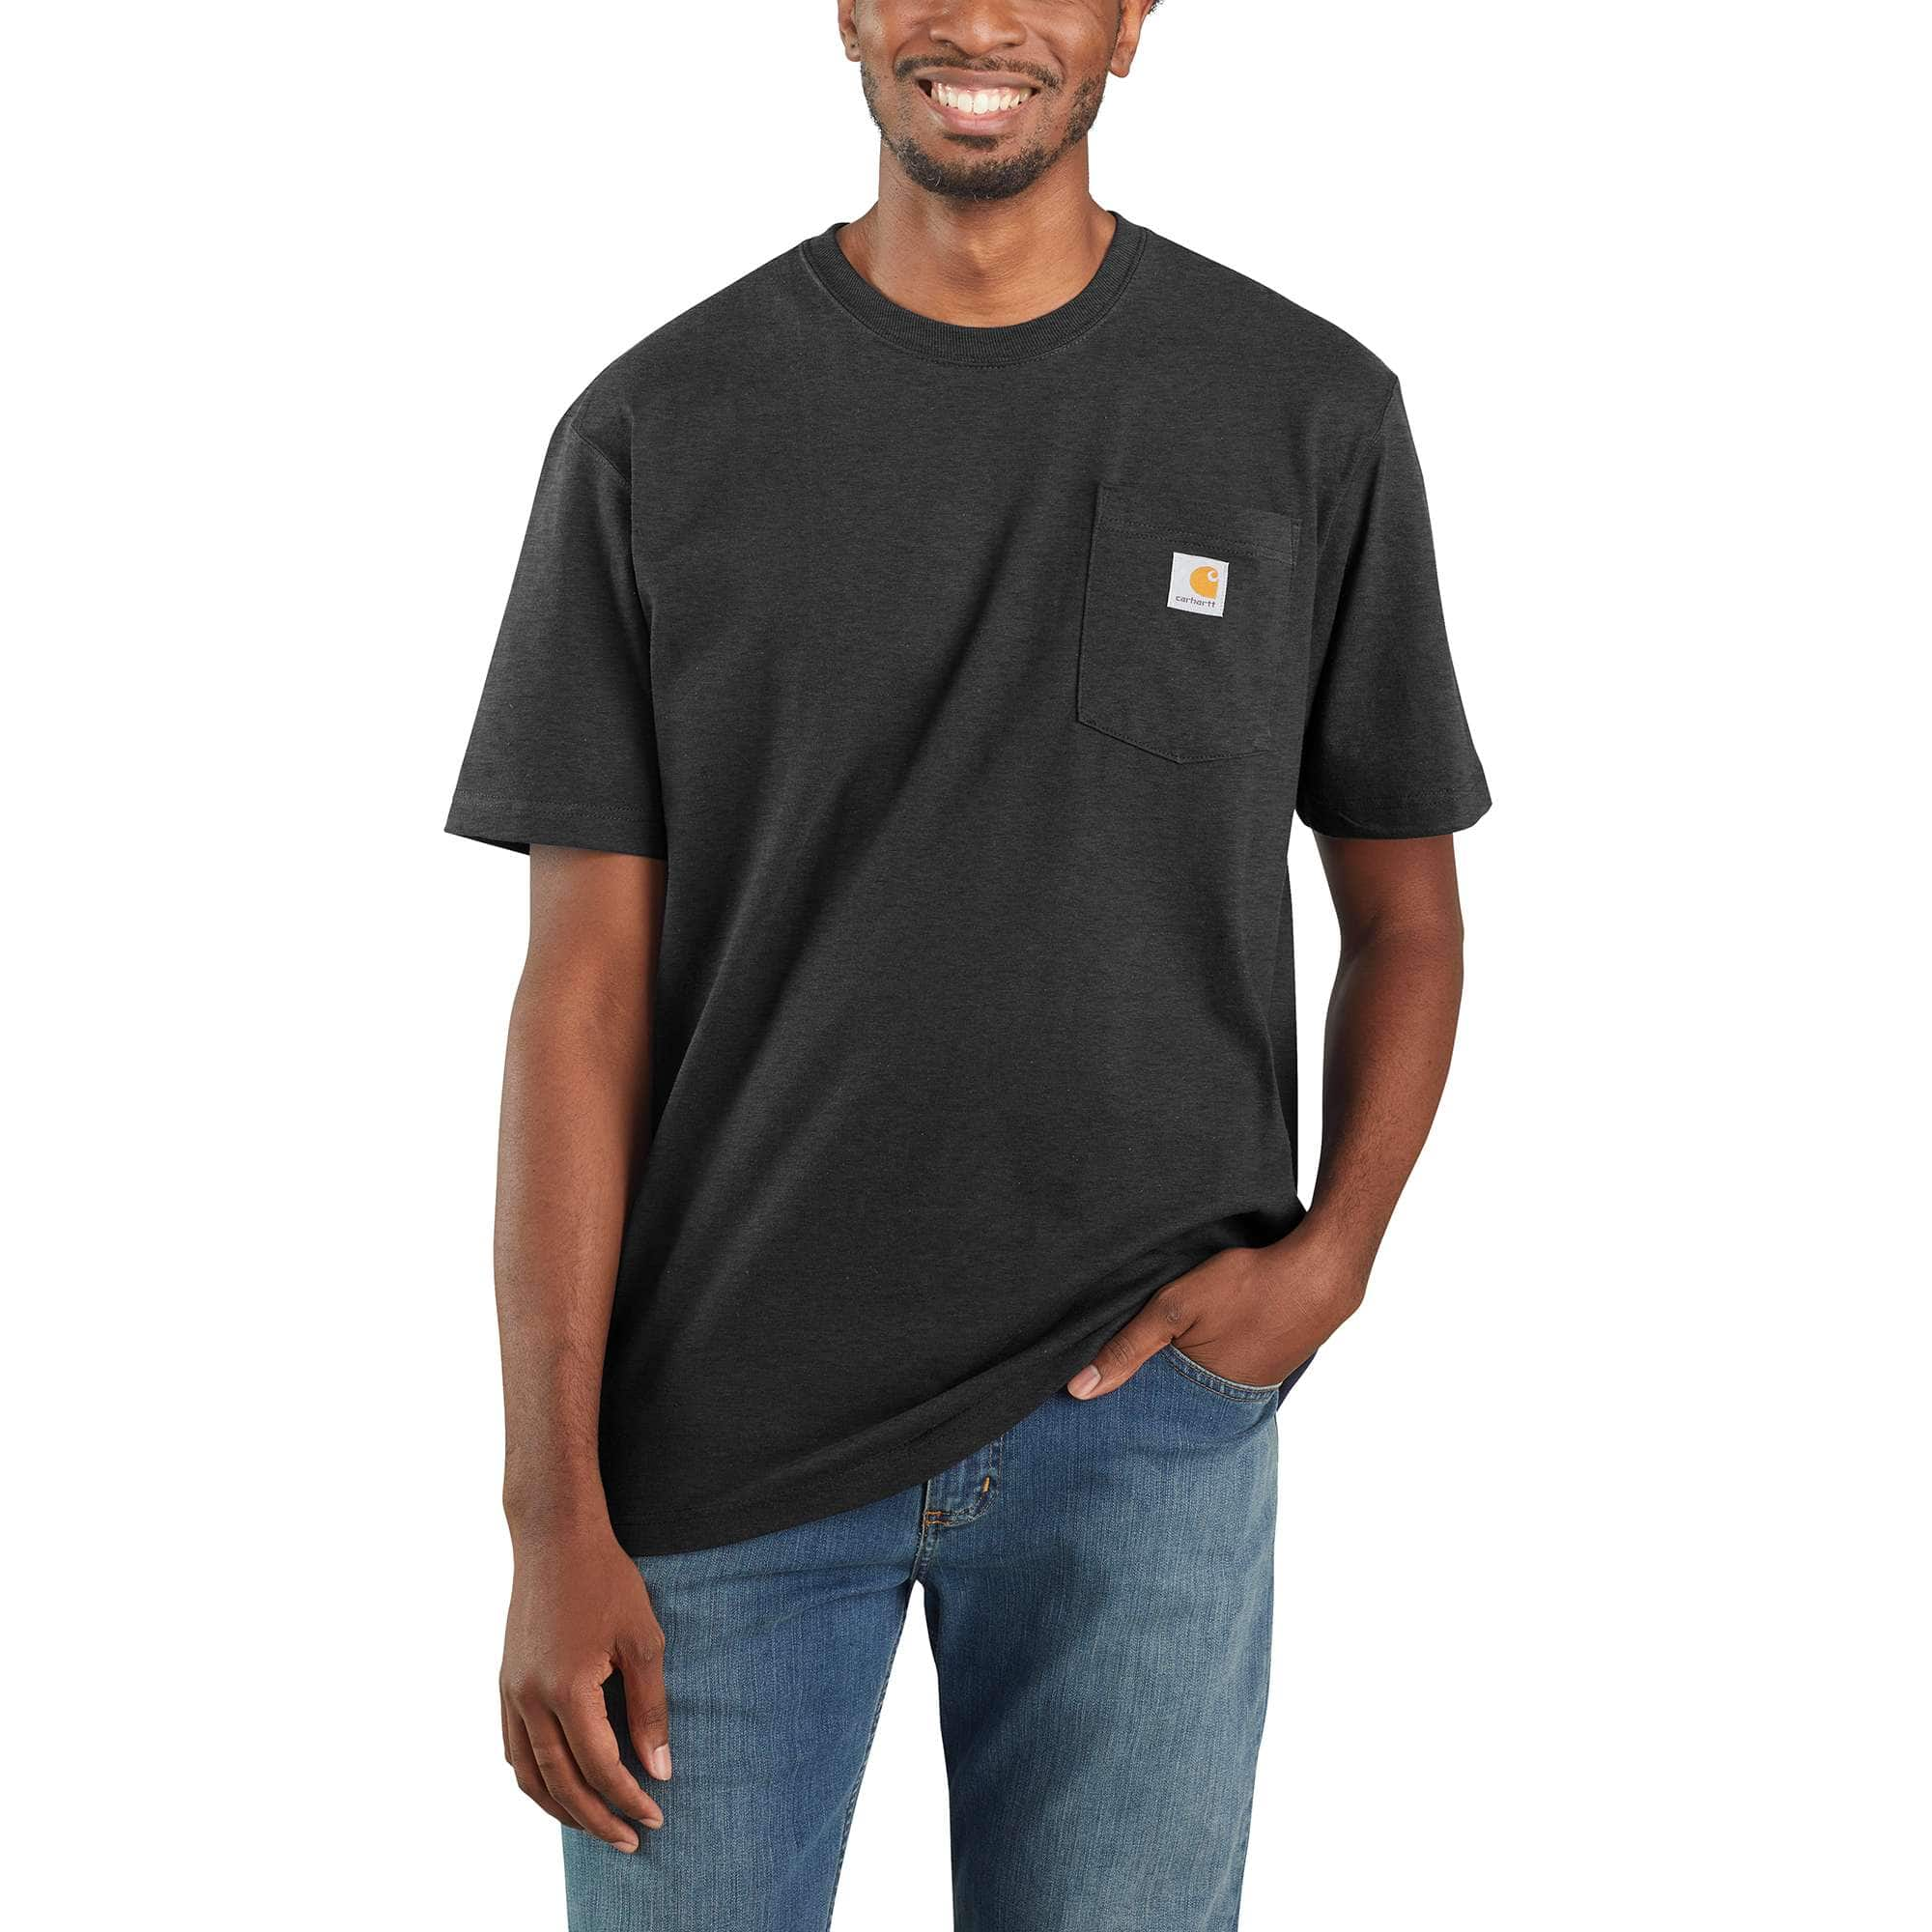 80ceb192c921 Men s Workwear Pocket T-Shirt K87